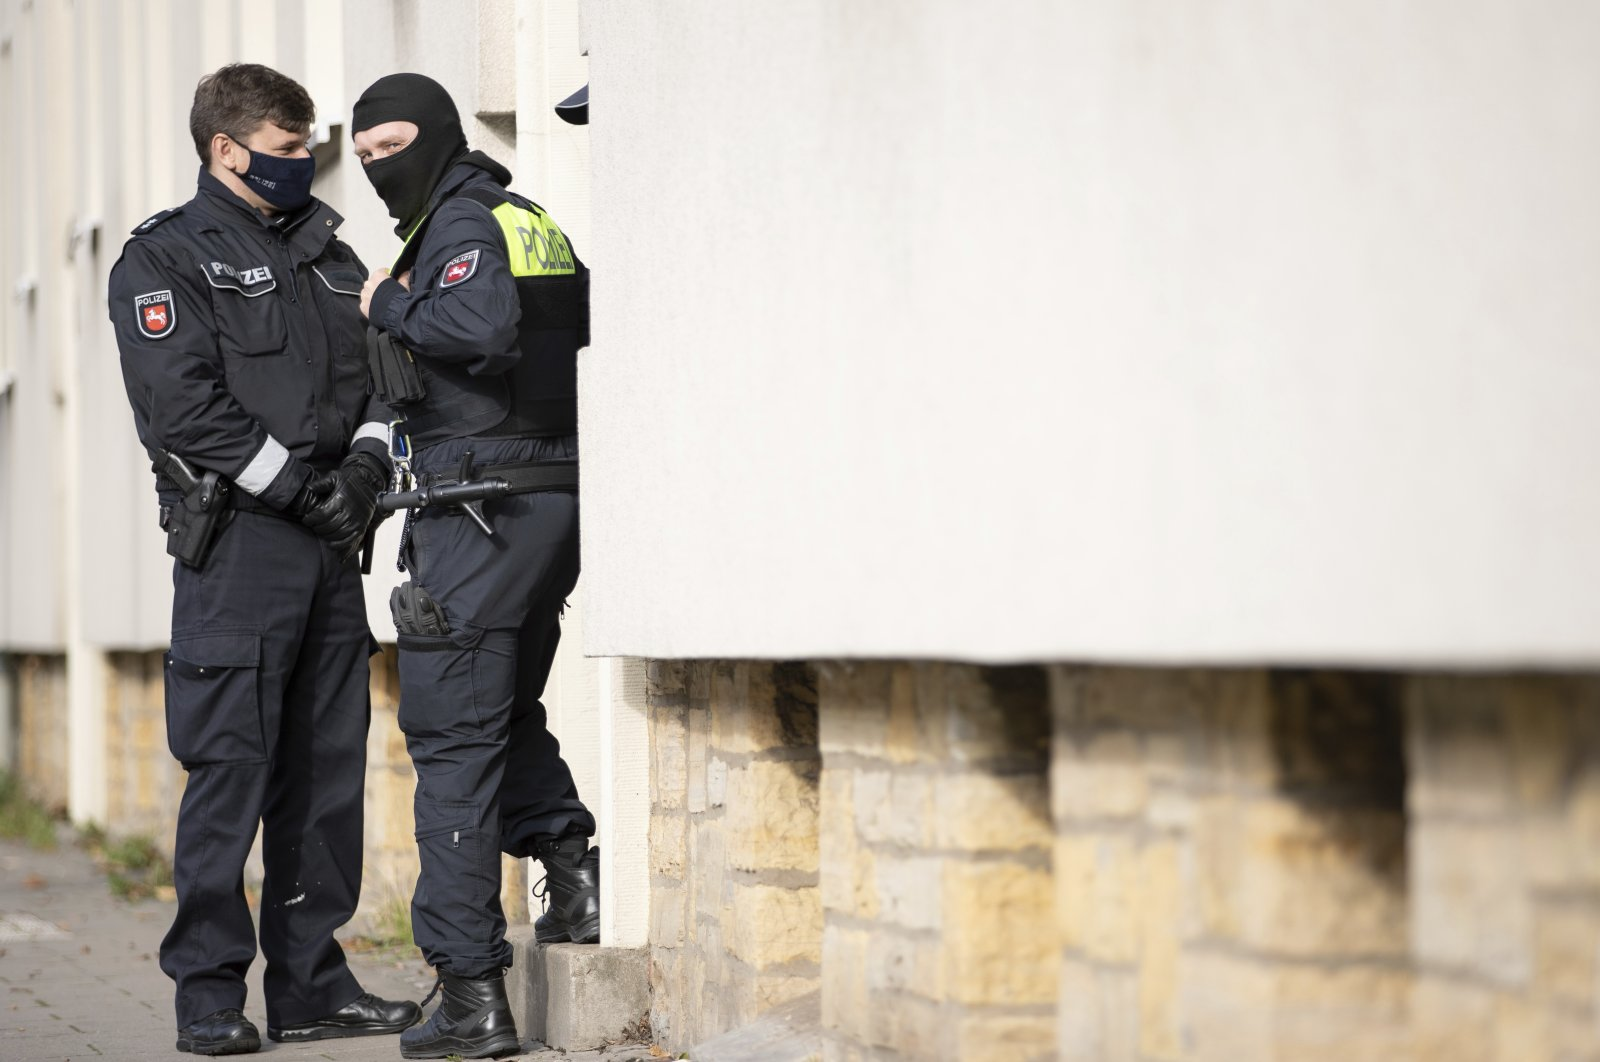 Police officers are standing outside an apartment building during a search in Osnabruck, Germany, Nov. 6, 2020. (AP Photo)